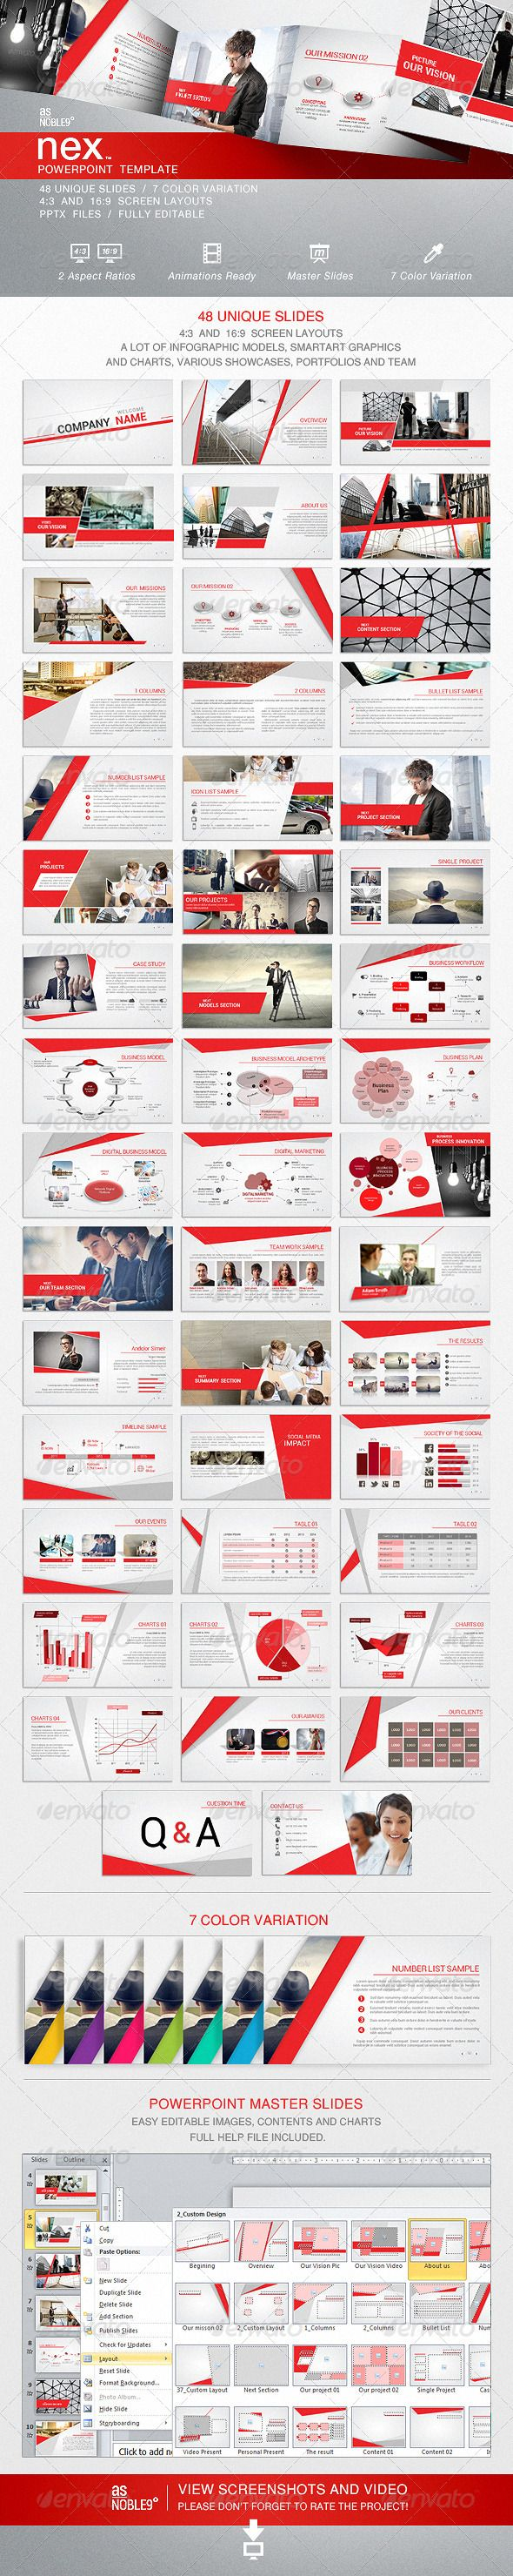 Presentation design layout. Inspirational presentation design samples. Visit us at: www.sodapopmedia.com #PresentationDesign #Presentation #Multimedia #Interactive #Keynote #PowerPoint #BusinessPresentation